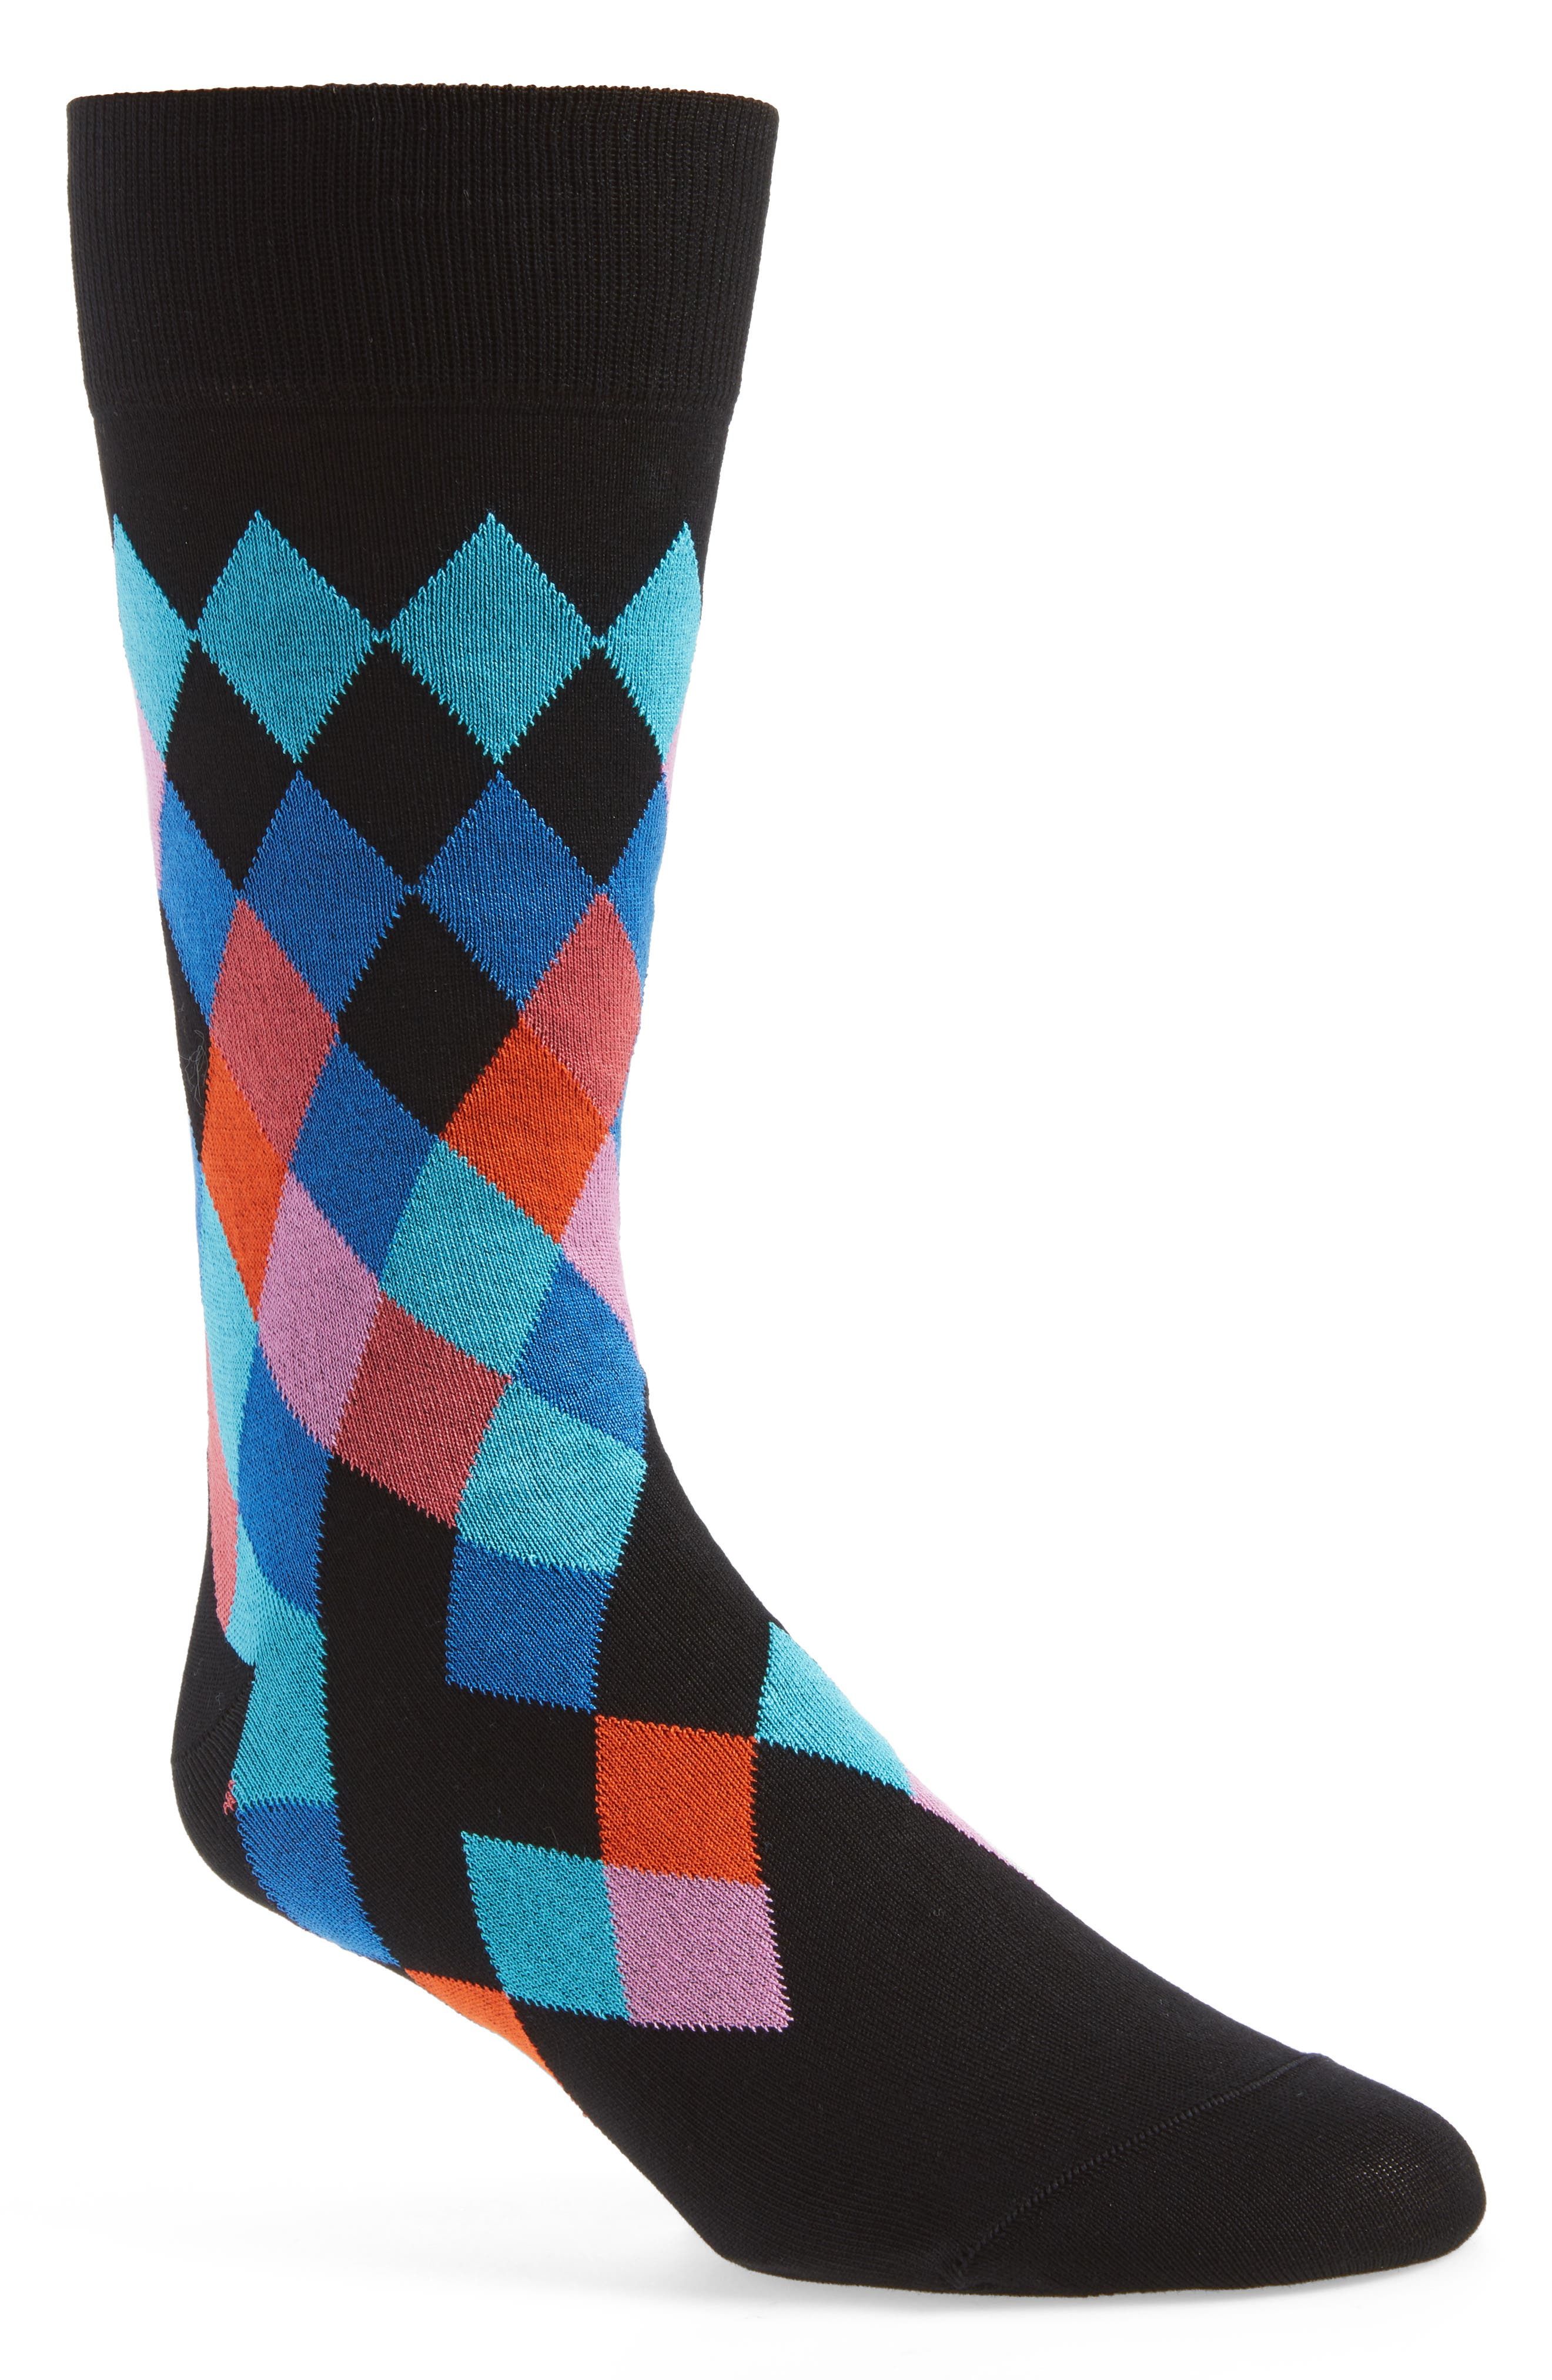 Cotton Blend Socks,                         Main,                         color, Midnight